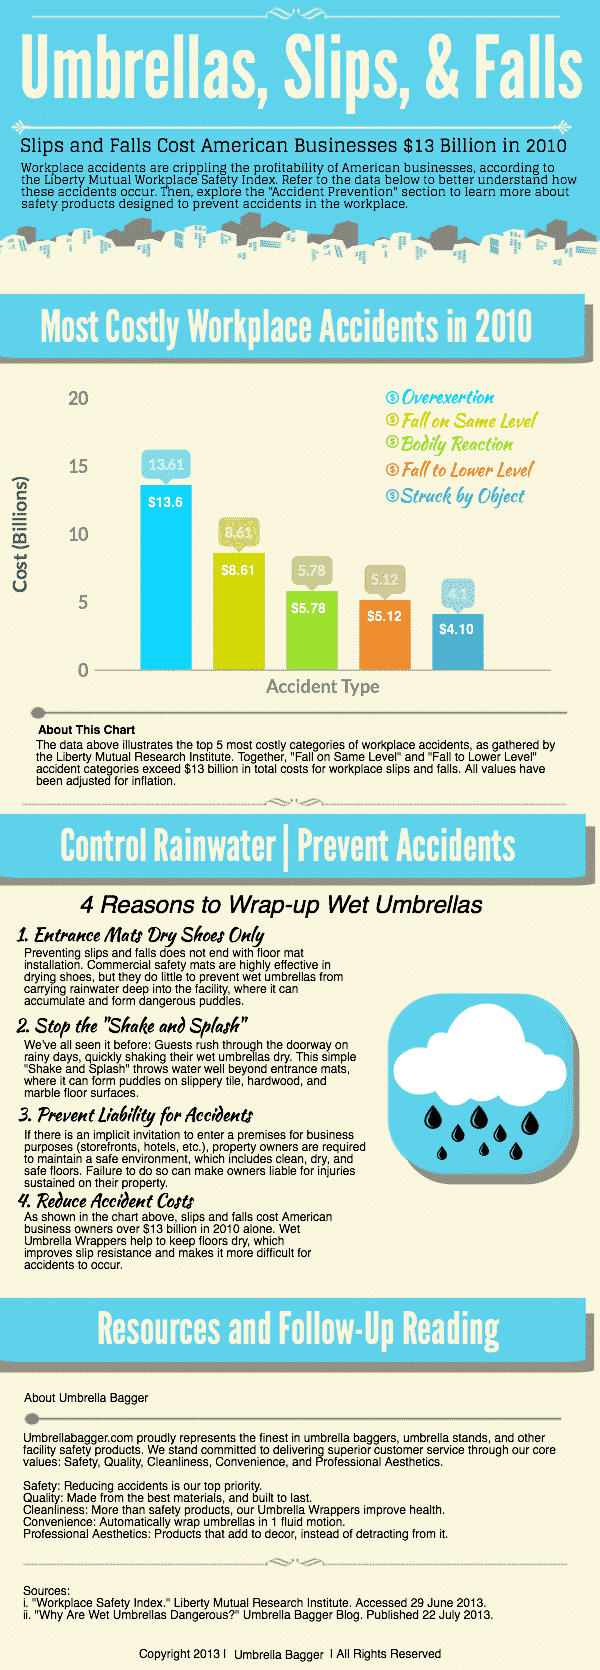 Free Infographic: Prevent Slippery Floors, Reduce Accidents